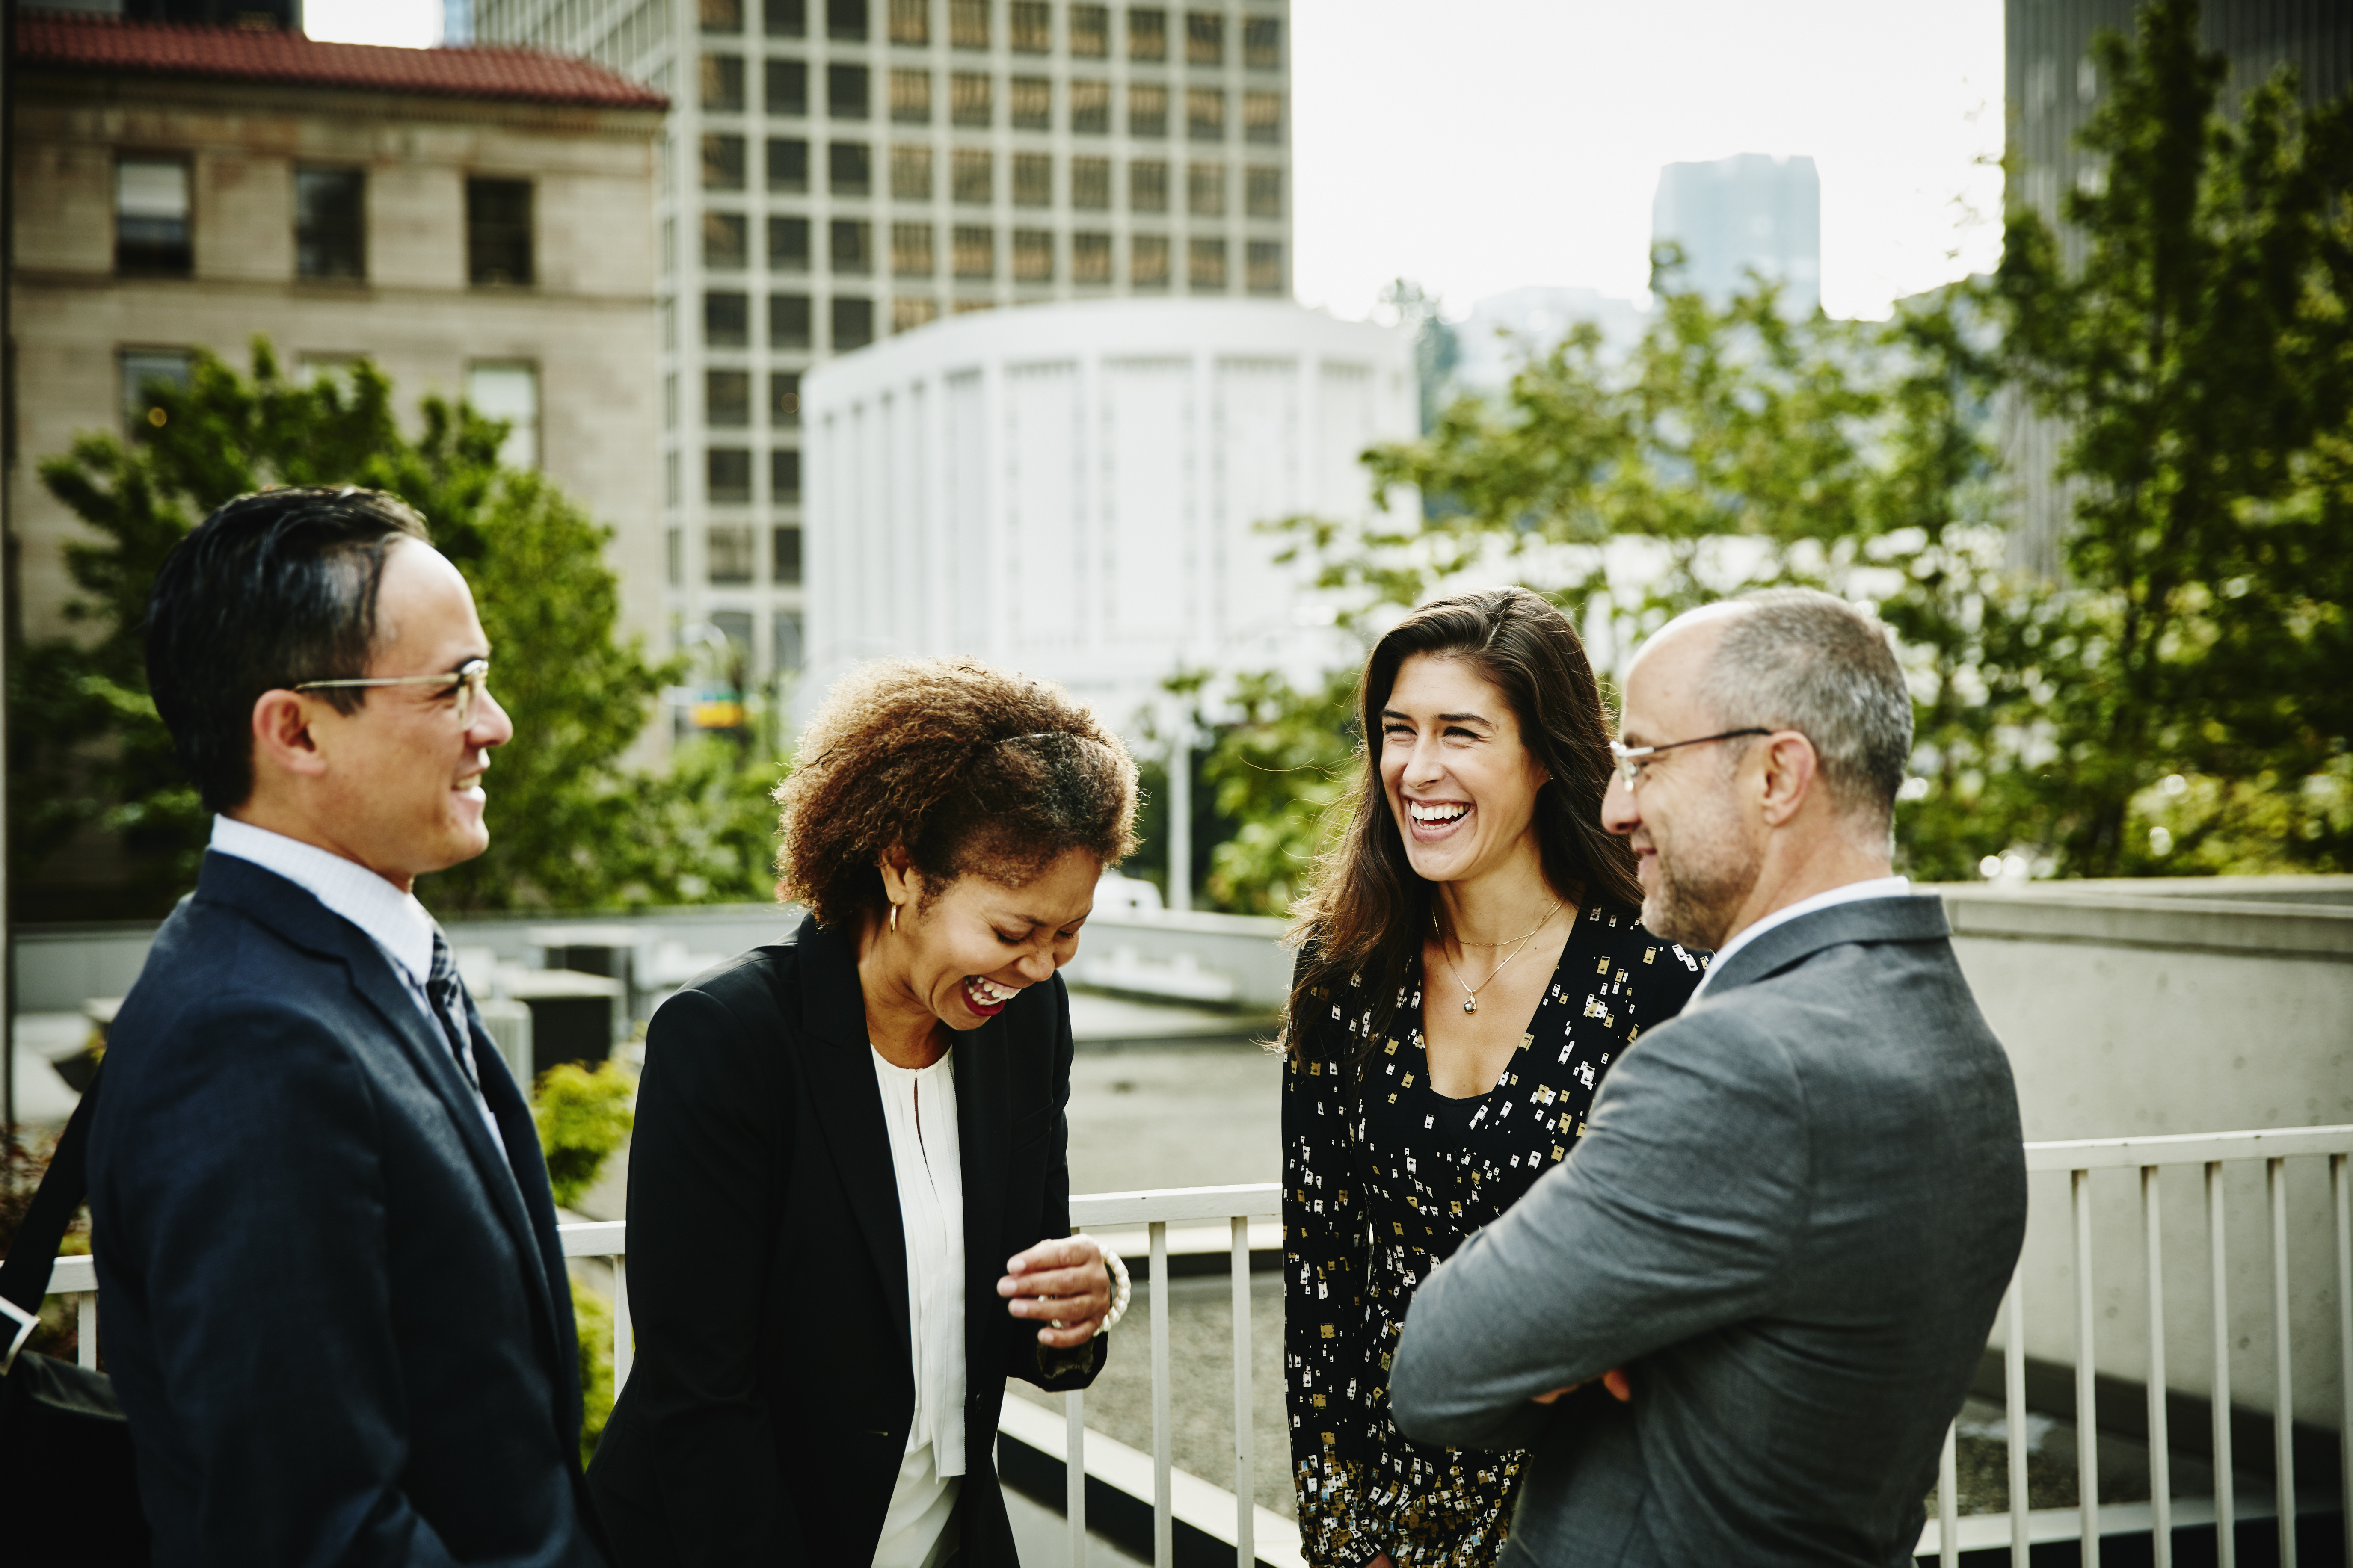 Laughing business colleagues in discussion outside